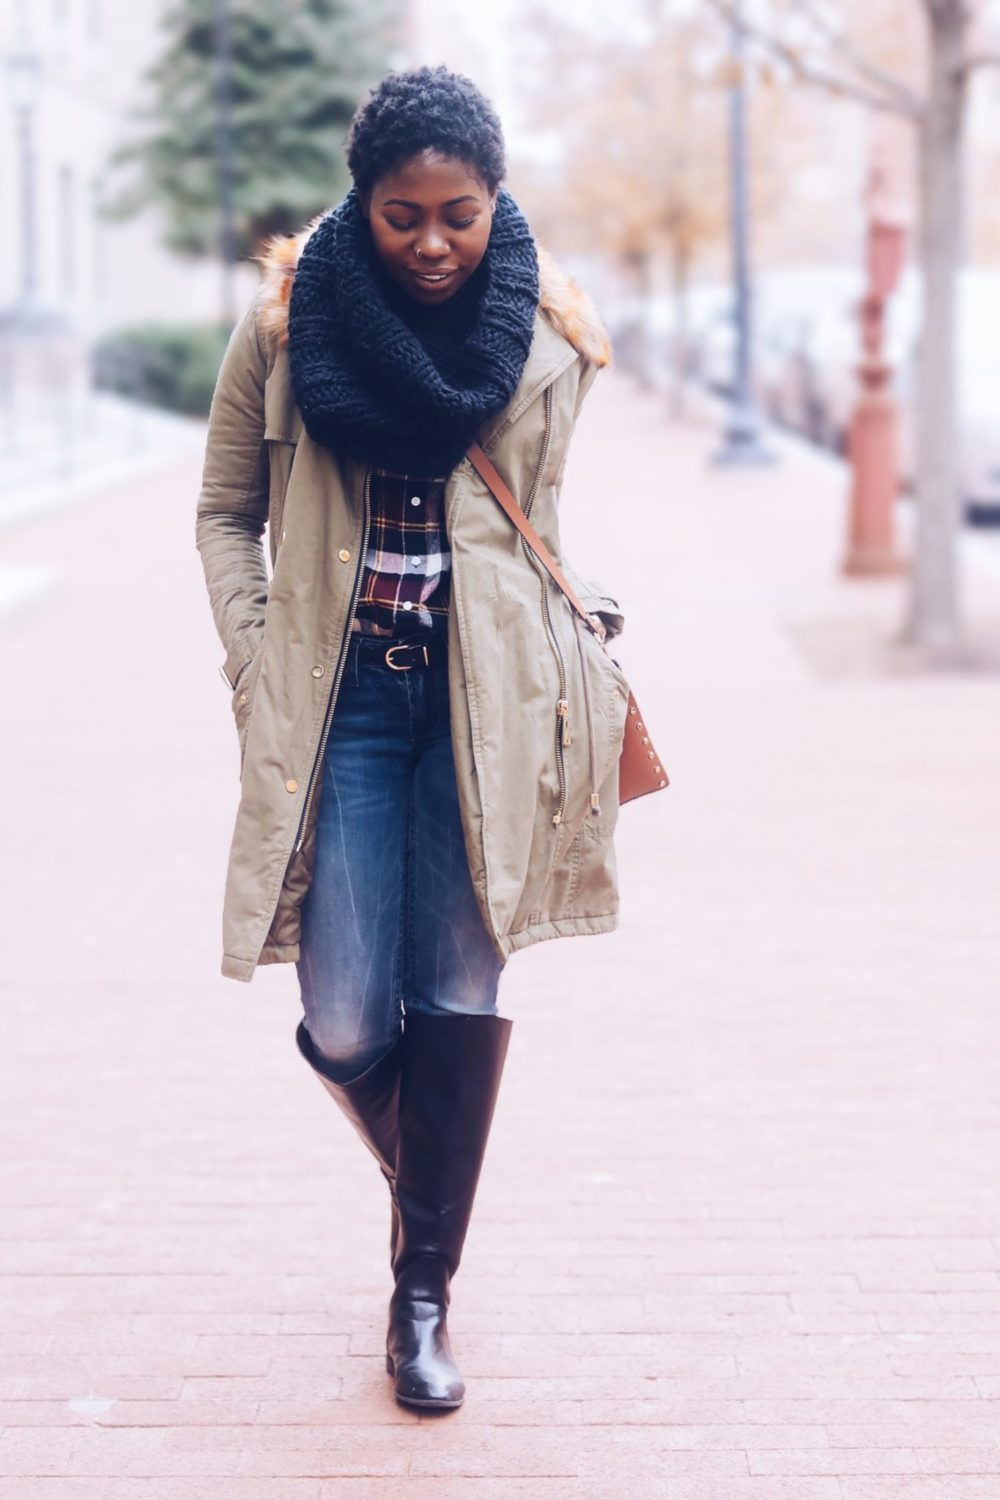 style-synopsis-winter-fashion-parka-jacket-boots